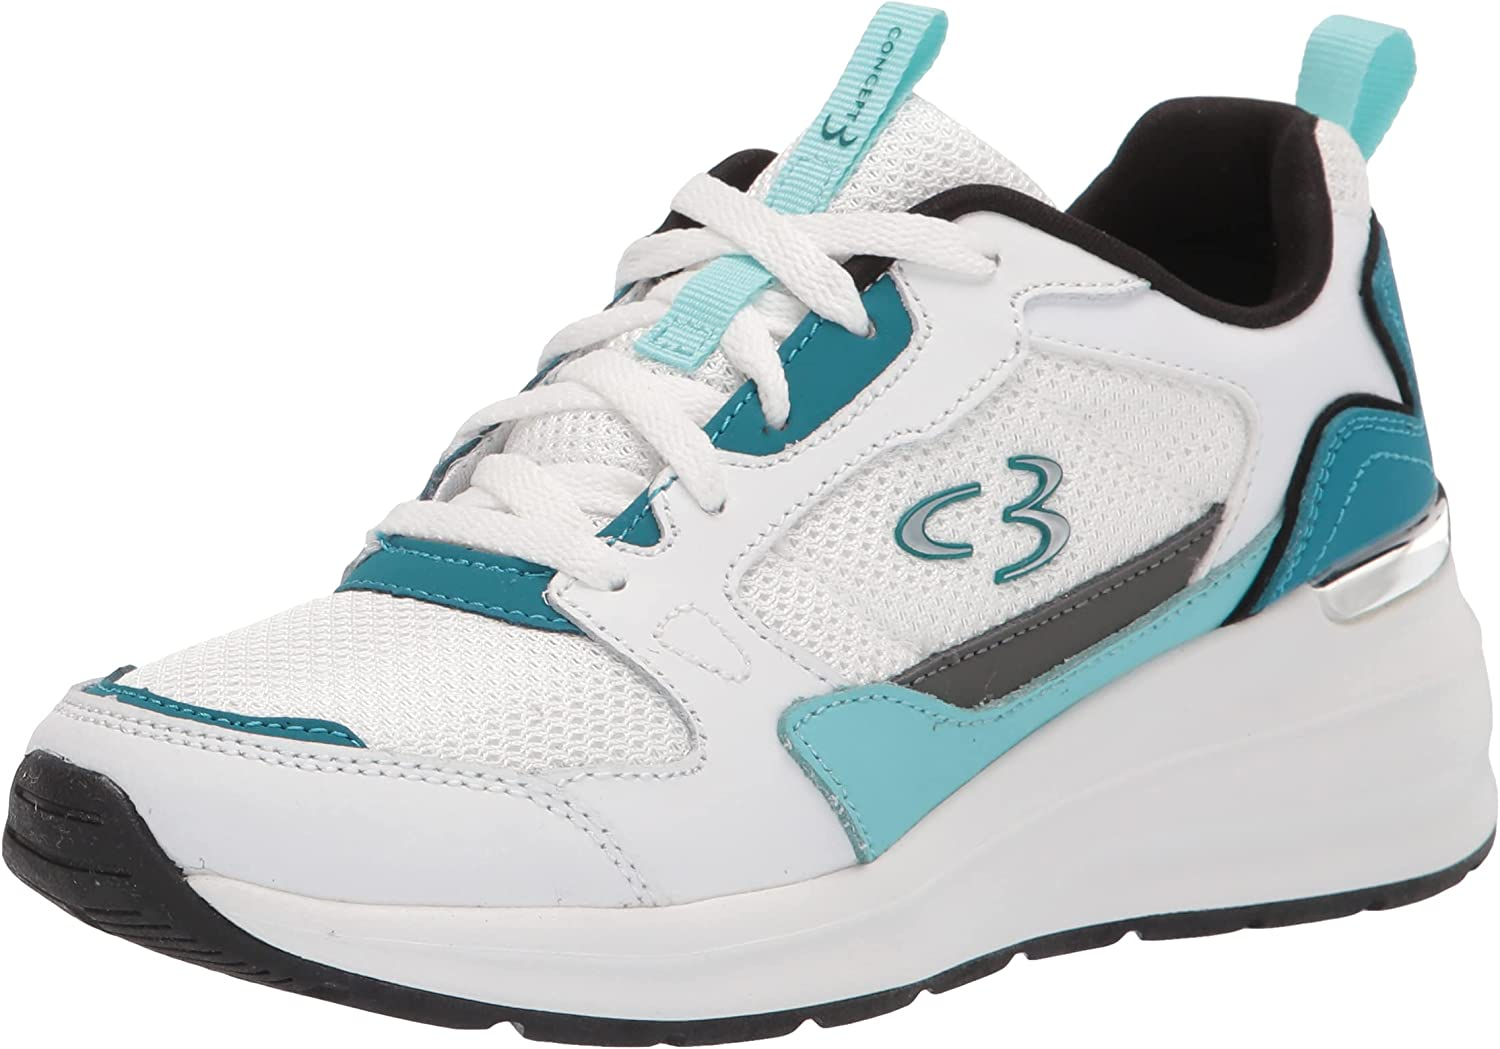 Concept 3 Minneapolis Mall by Skechers Women's Sunshine Elevated Sneaker Inexpensive